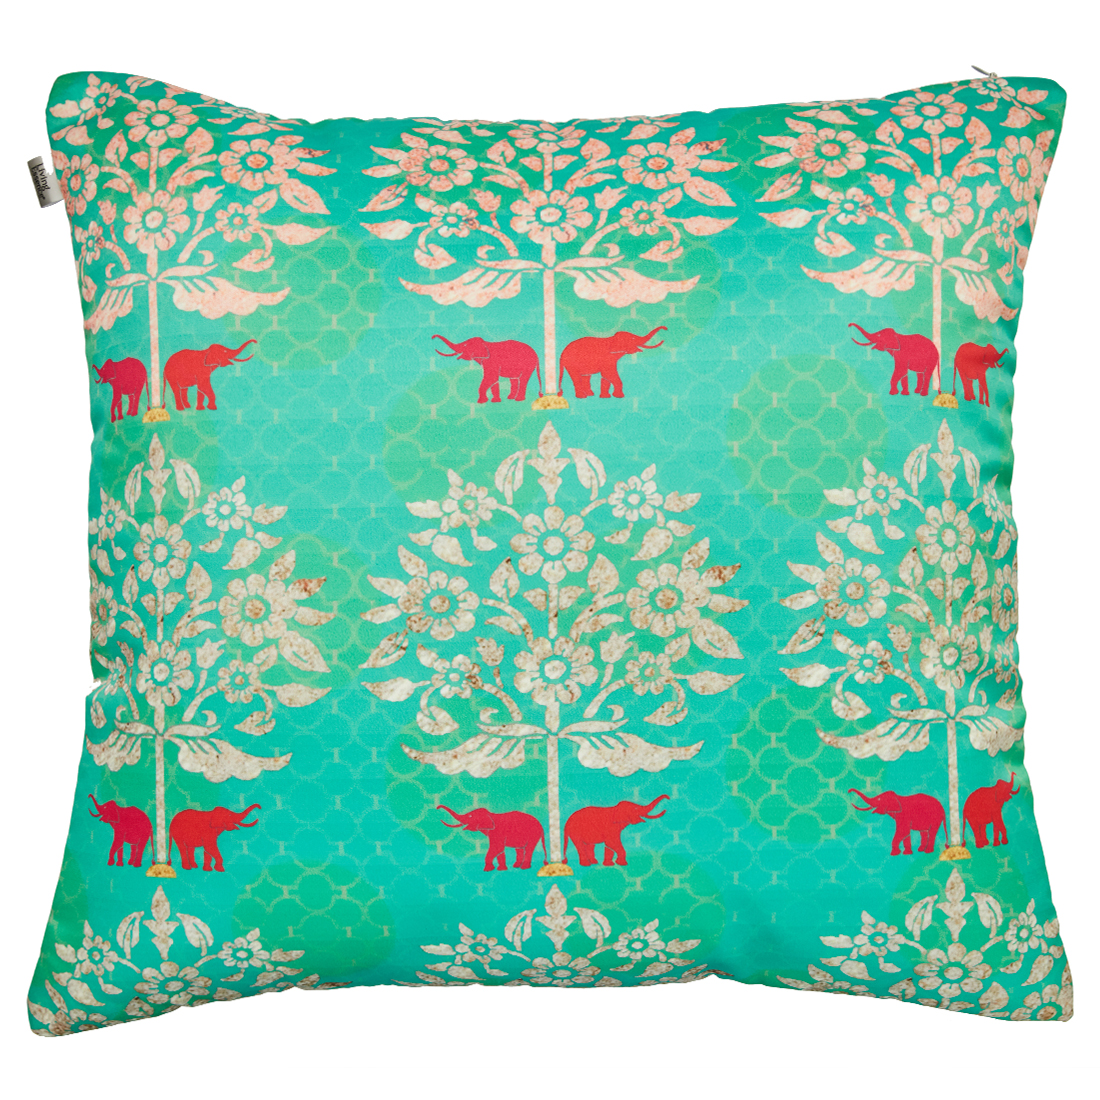 Digital Cushion Cover Gardenia Cushion Covers in Poly Satin Colour by Living Essence